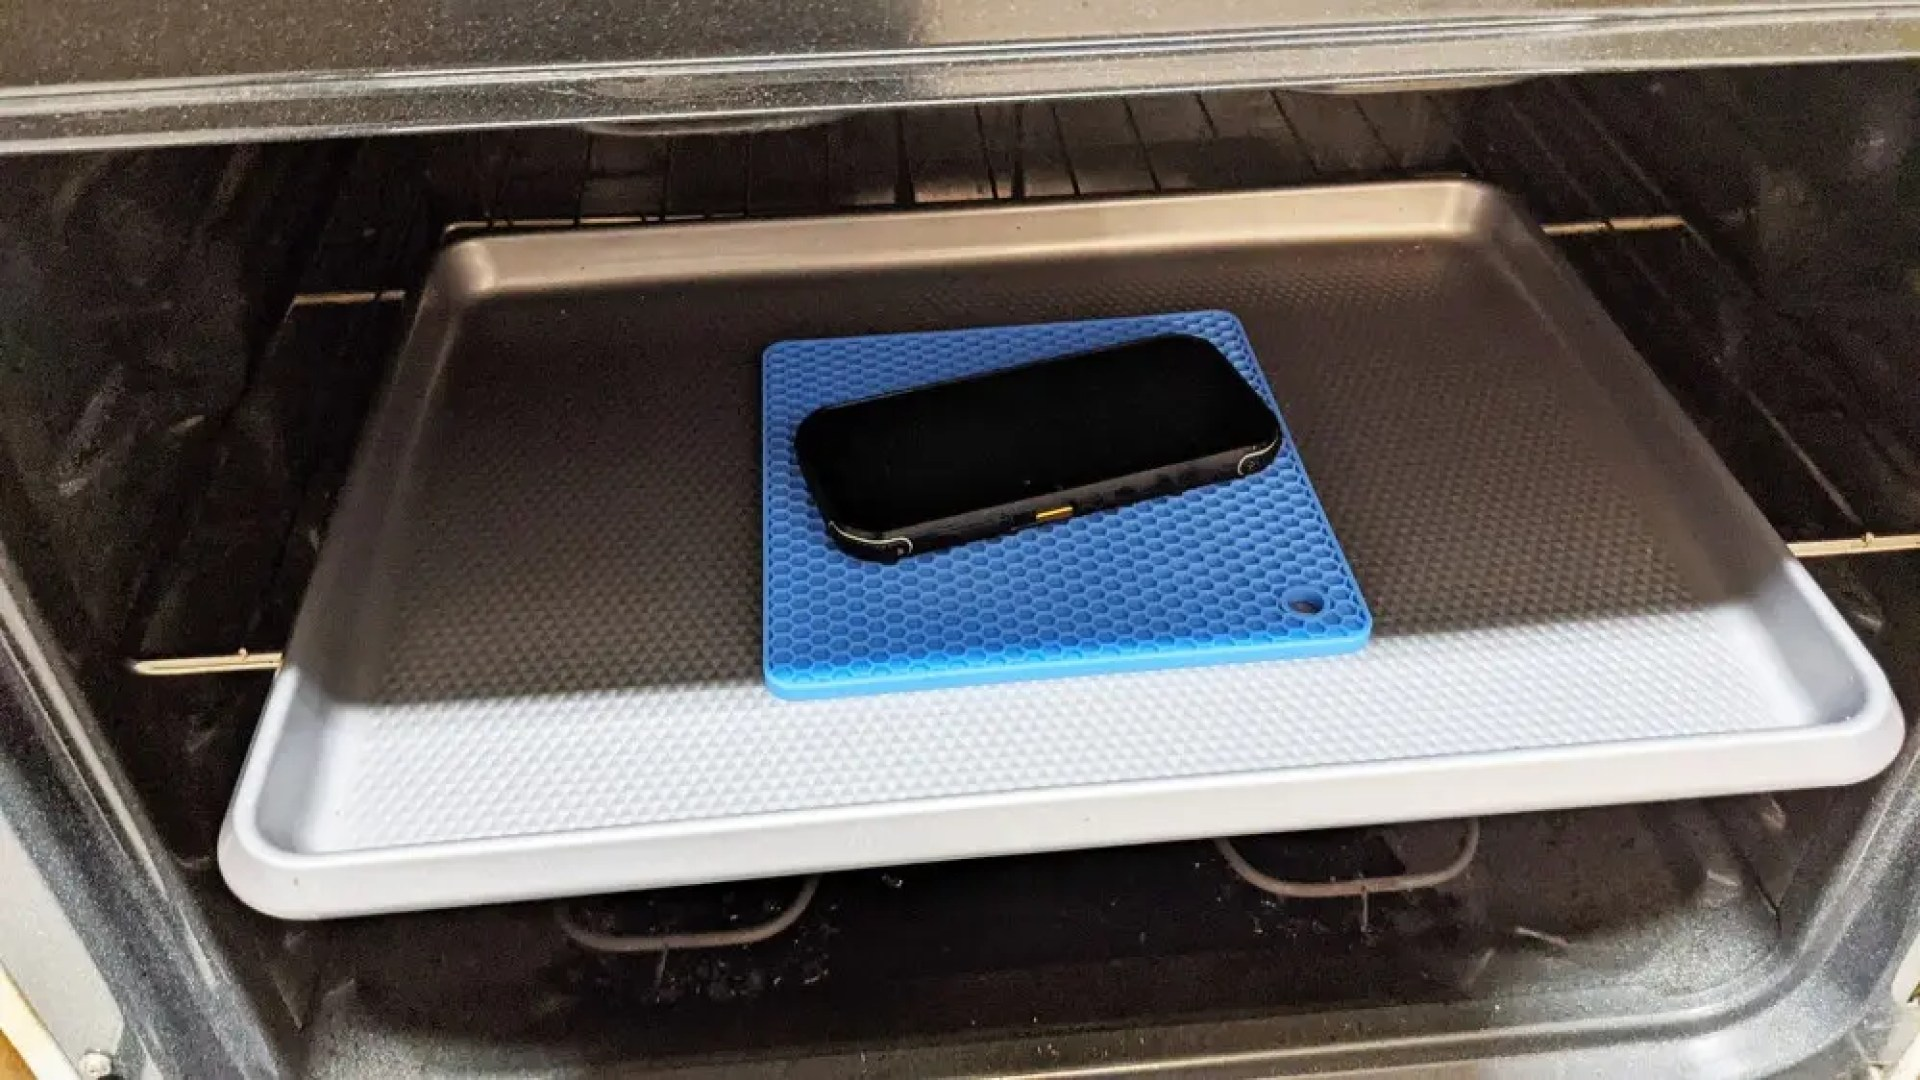 CAT S42 in the oven